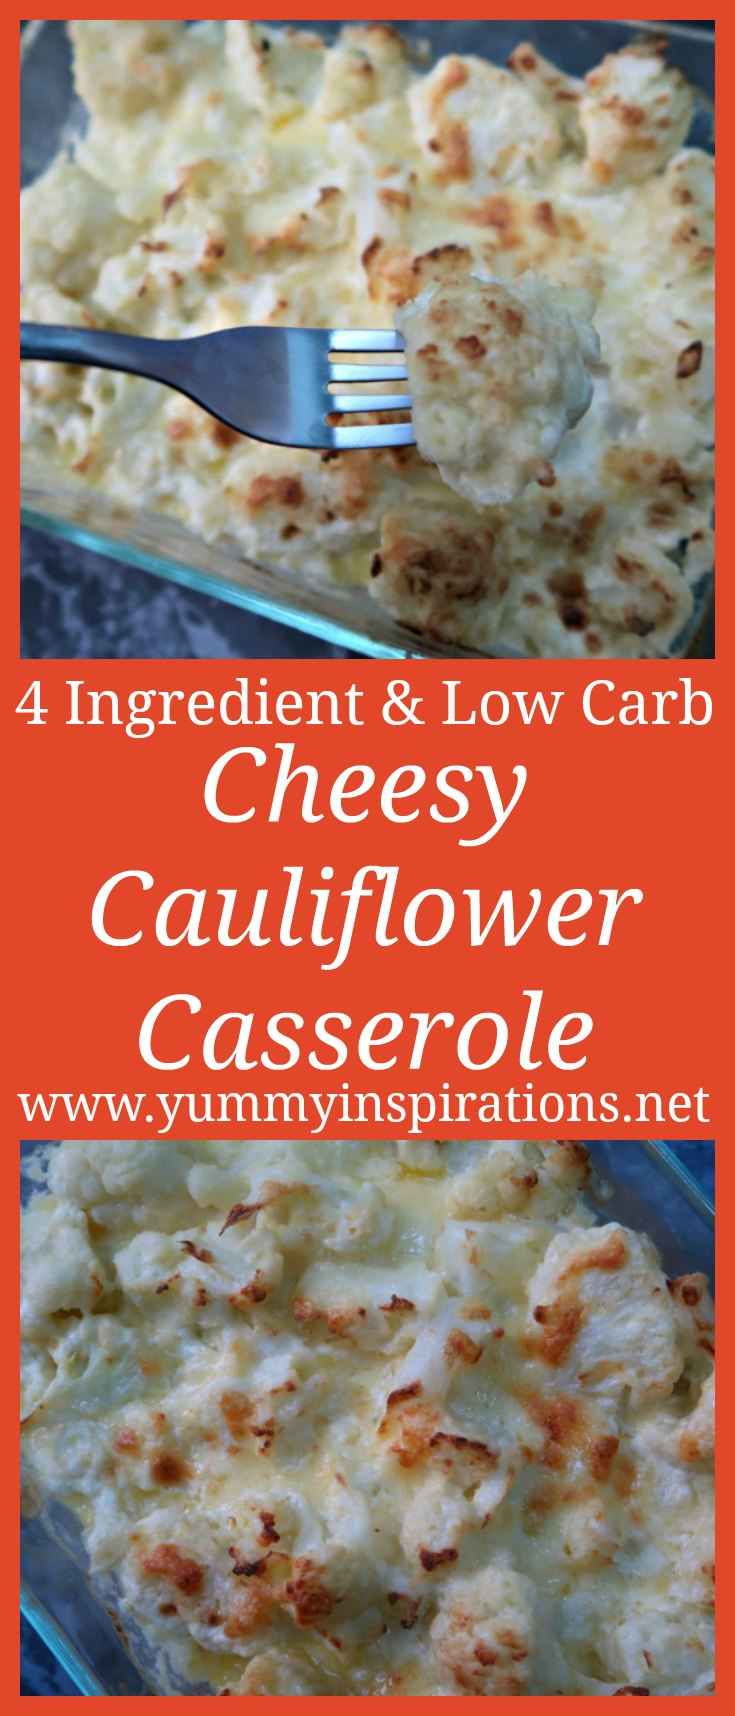 4 Ingredient Easy Cheesy Low Carb Cauliflower Casserole Recipe & Video